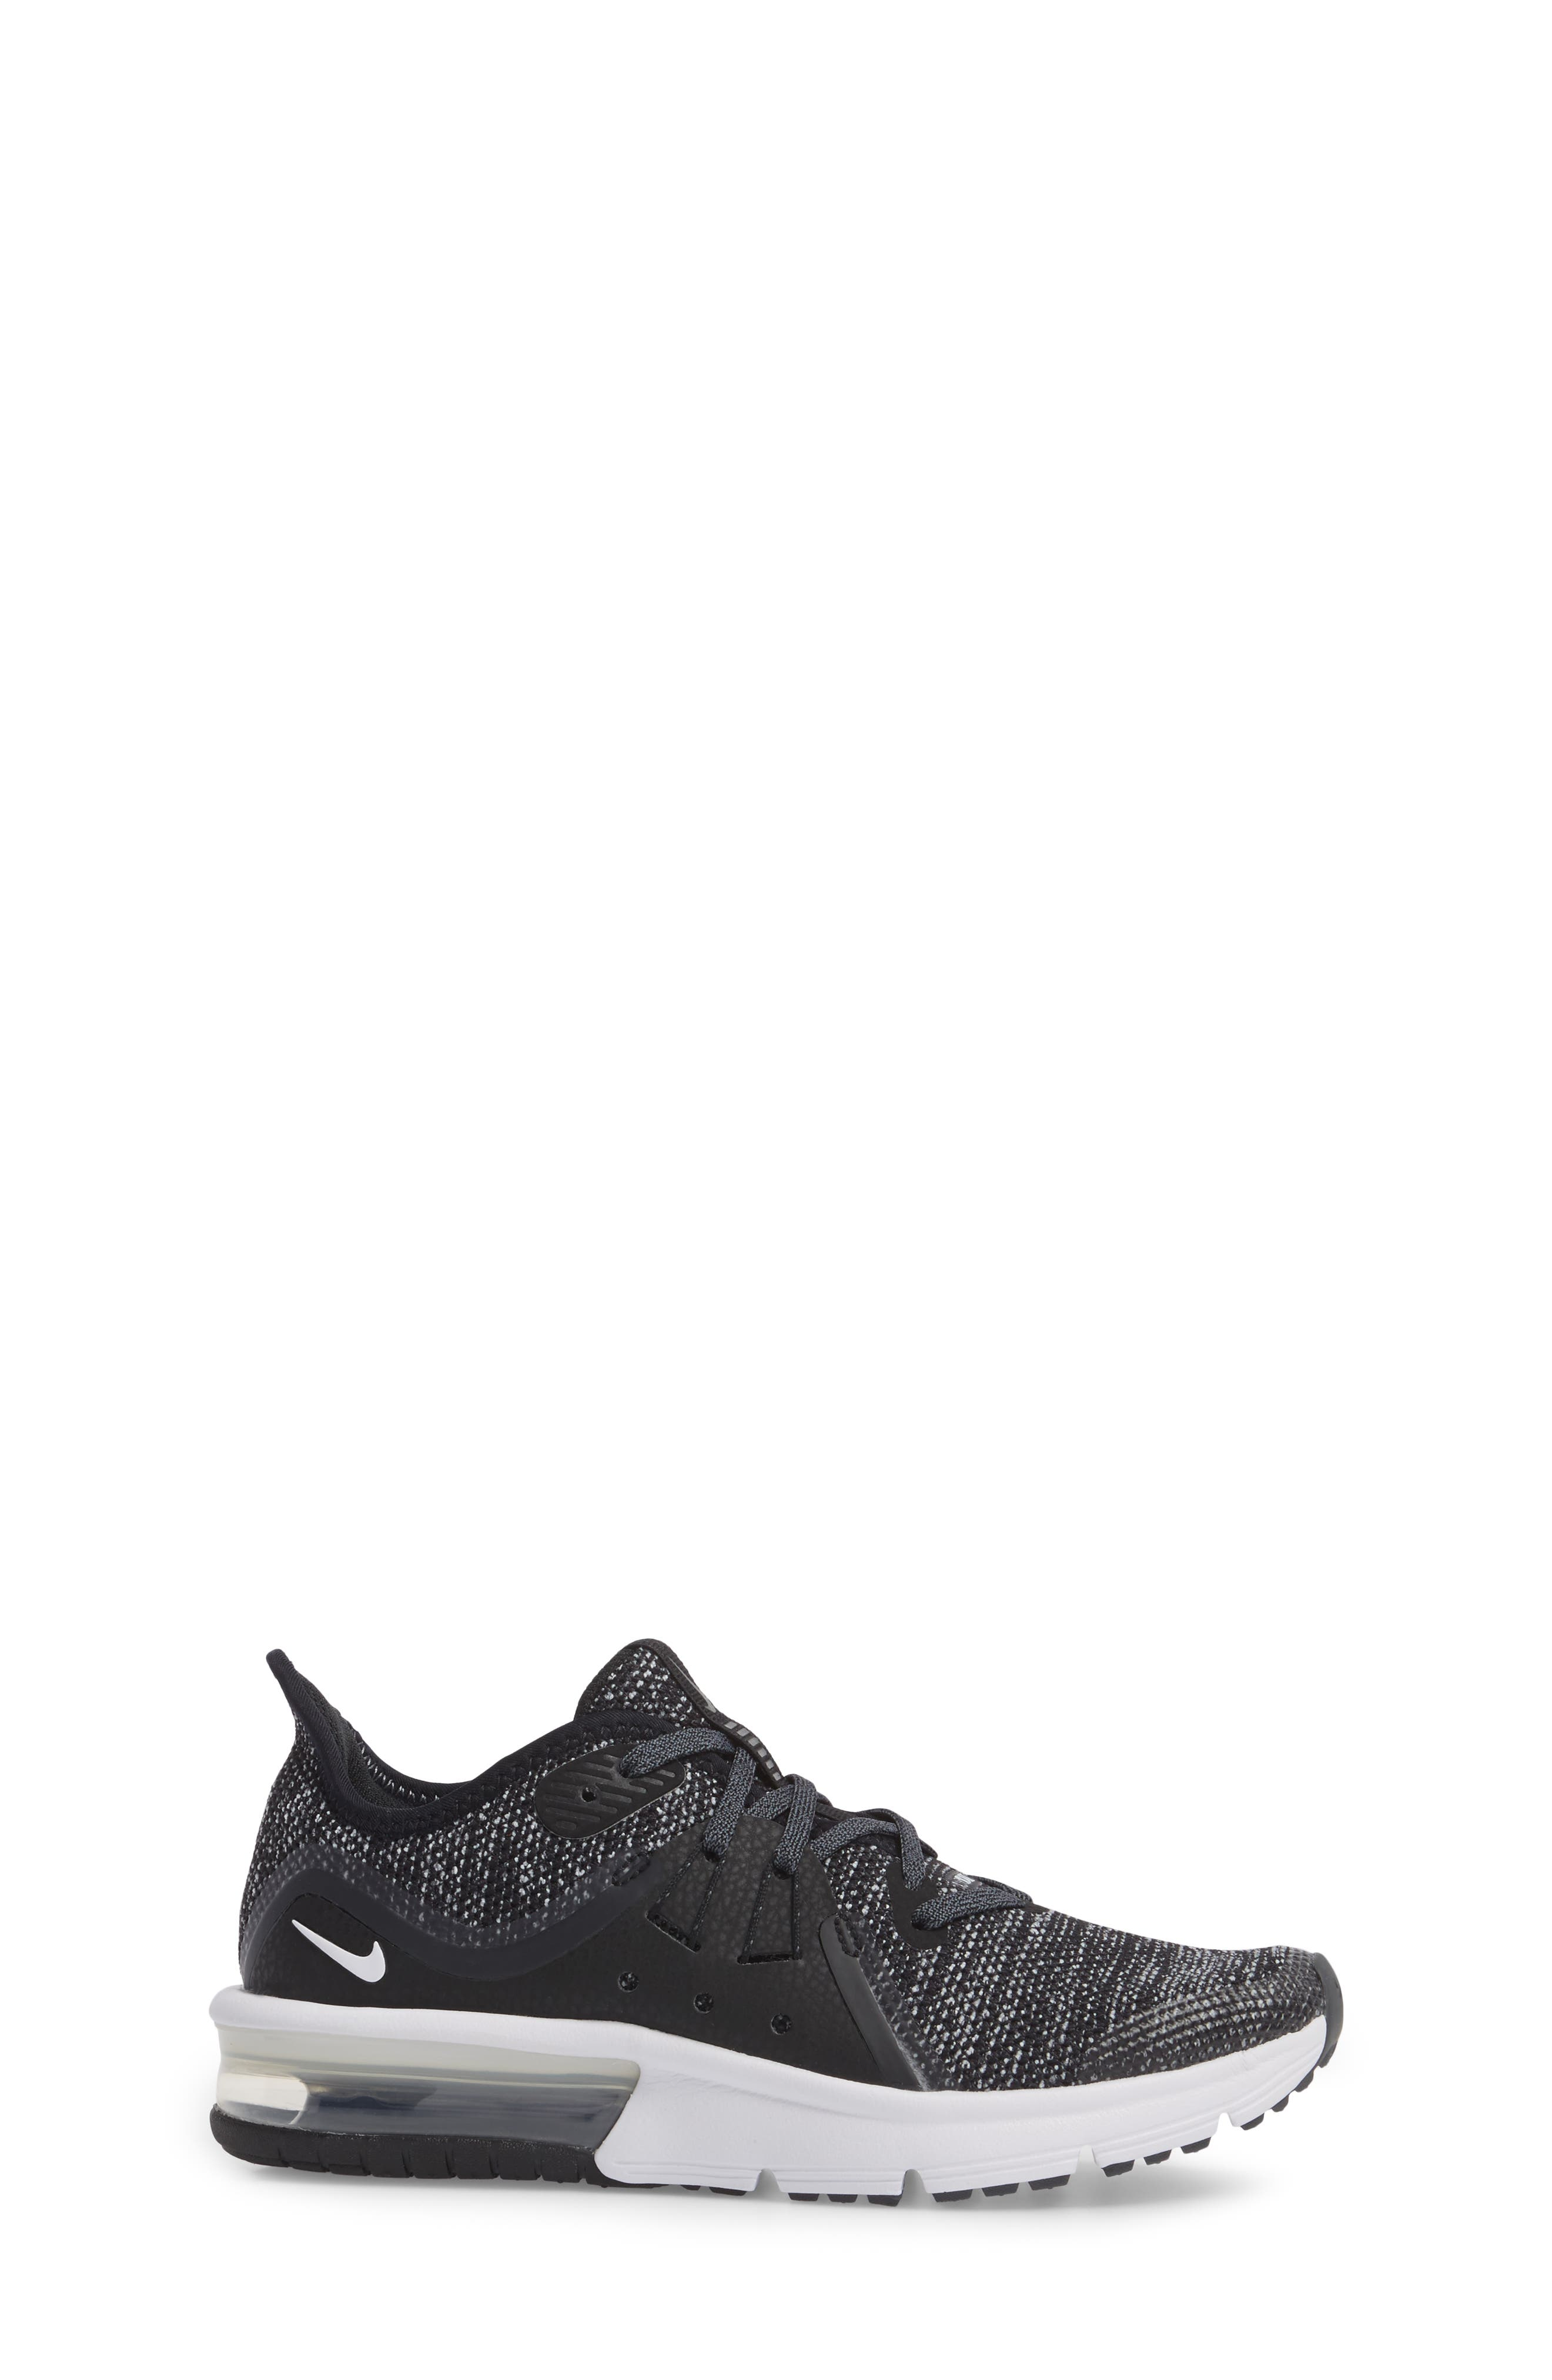 NIKE,                             Air Max Sequent 3 GS Running Shoe,                             Alternate thumbnail 3, color,                             001